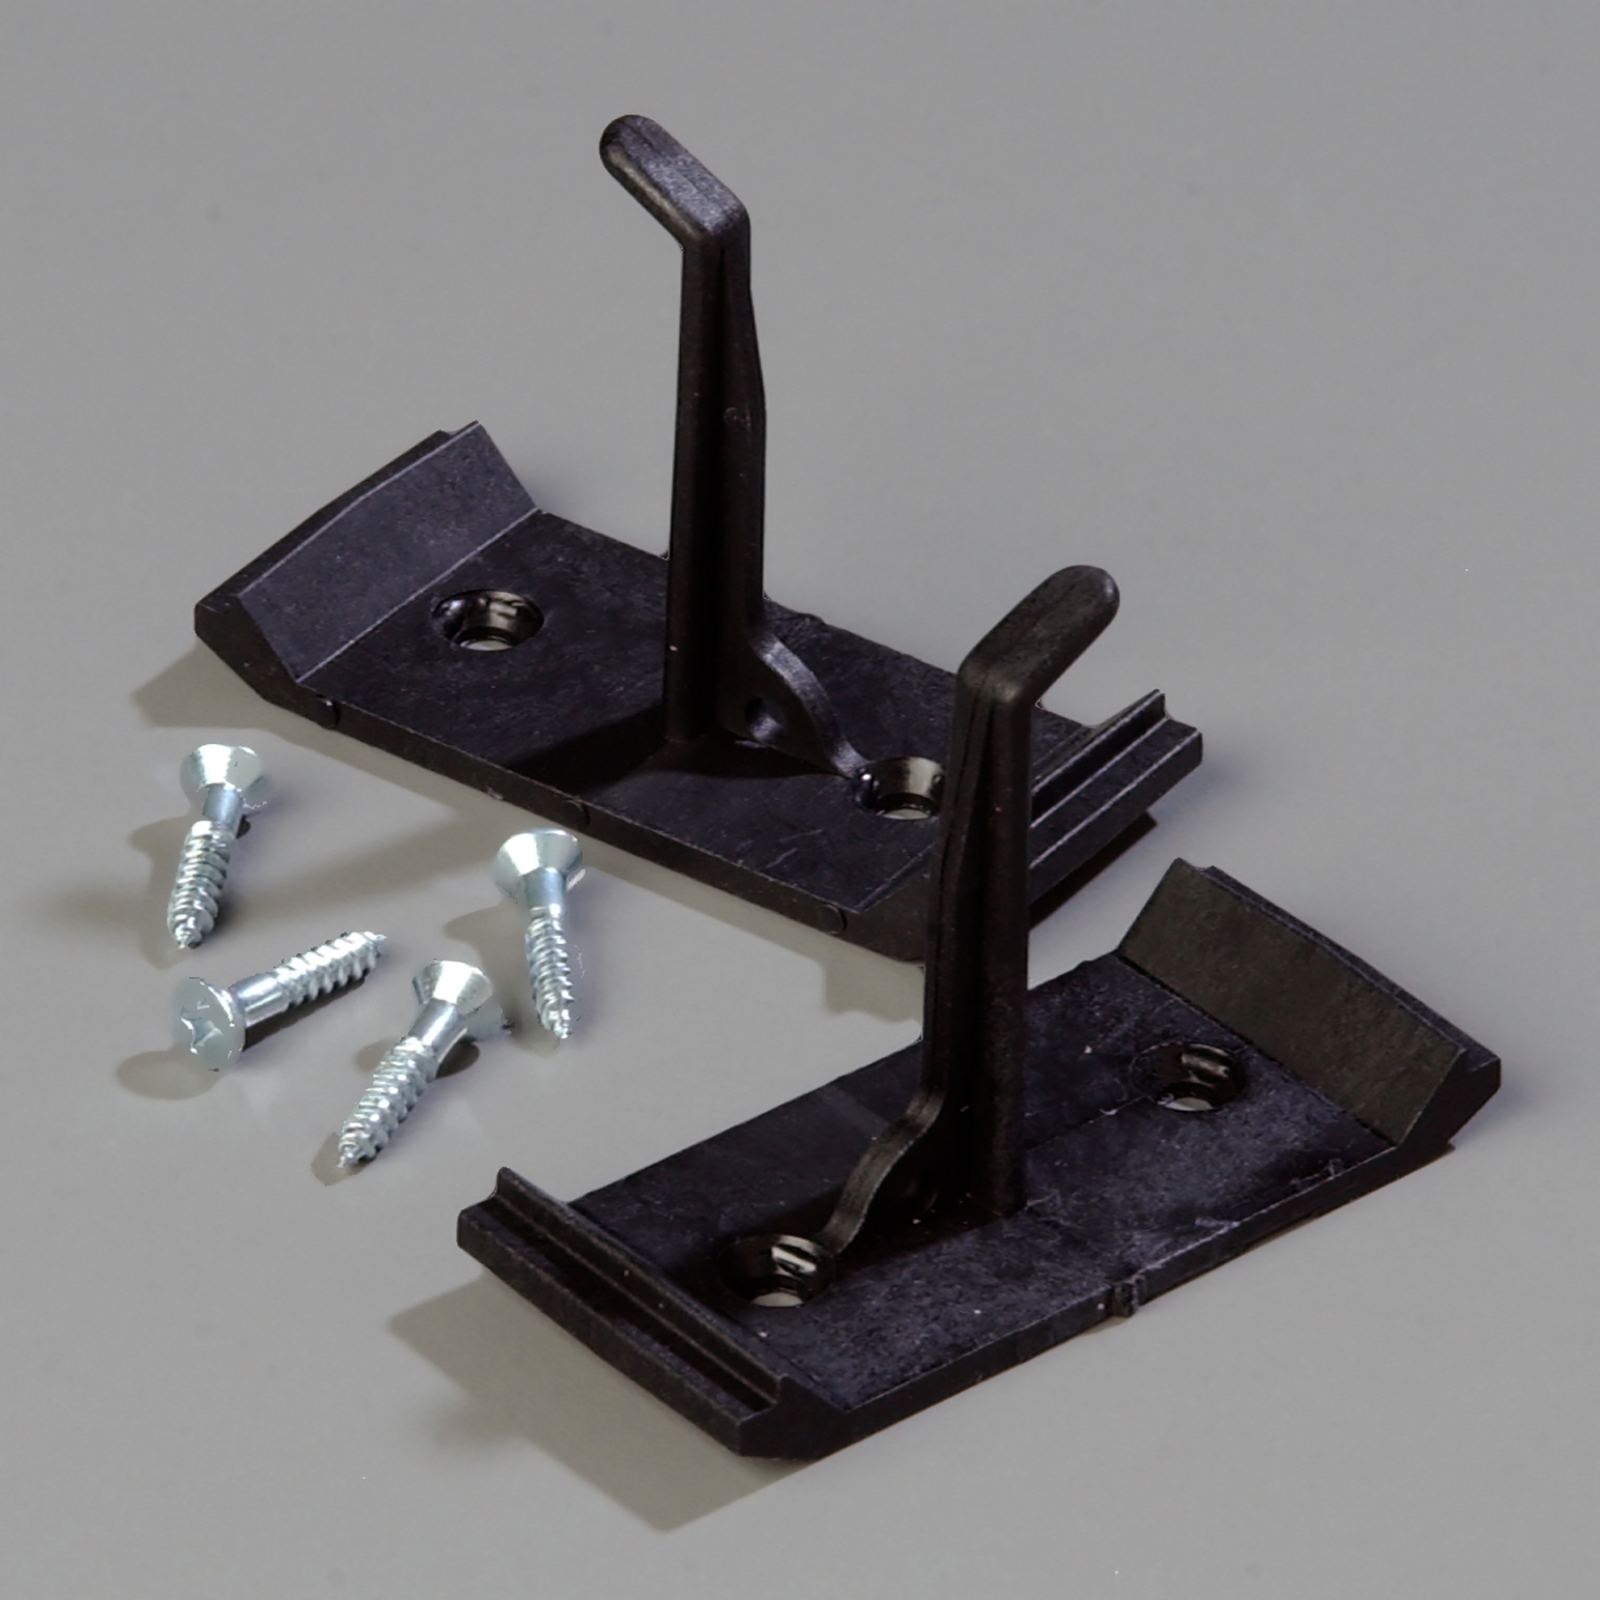 3700-64 Carlisle Replacement Hooks for Mop/Broom Holder